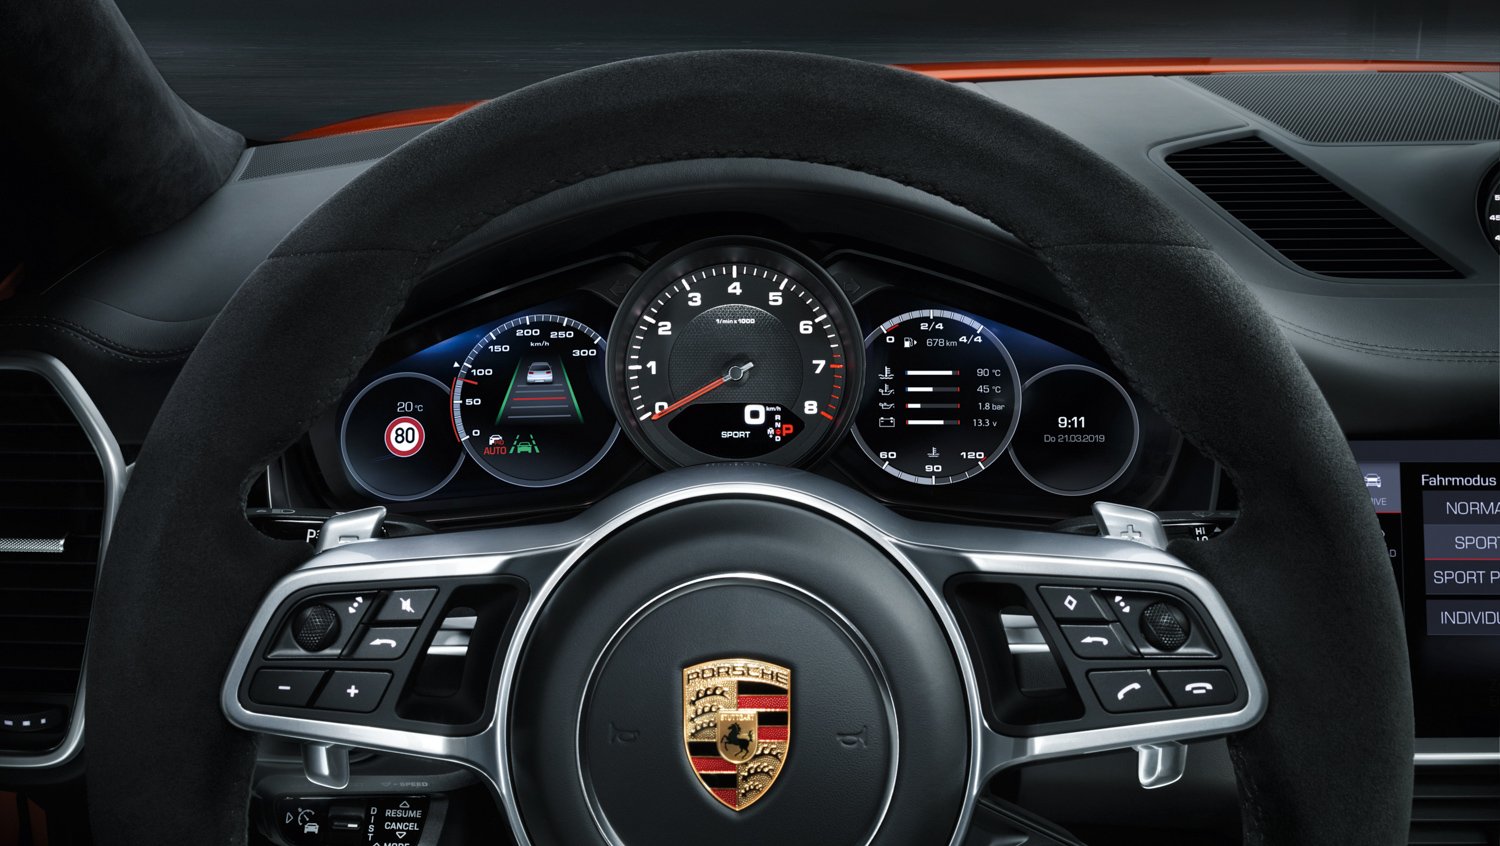 Porsche Cayenne Coupé steering wheel gauges